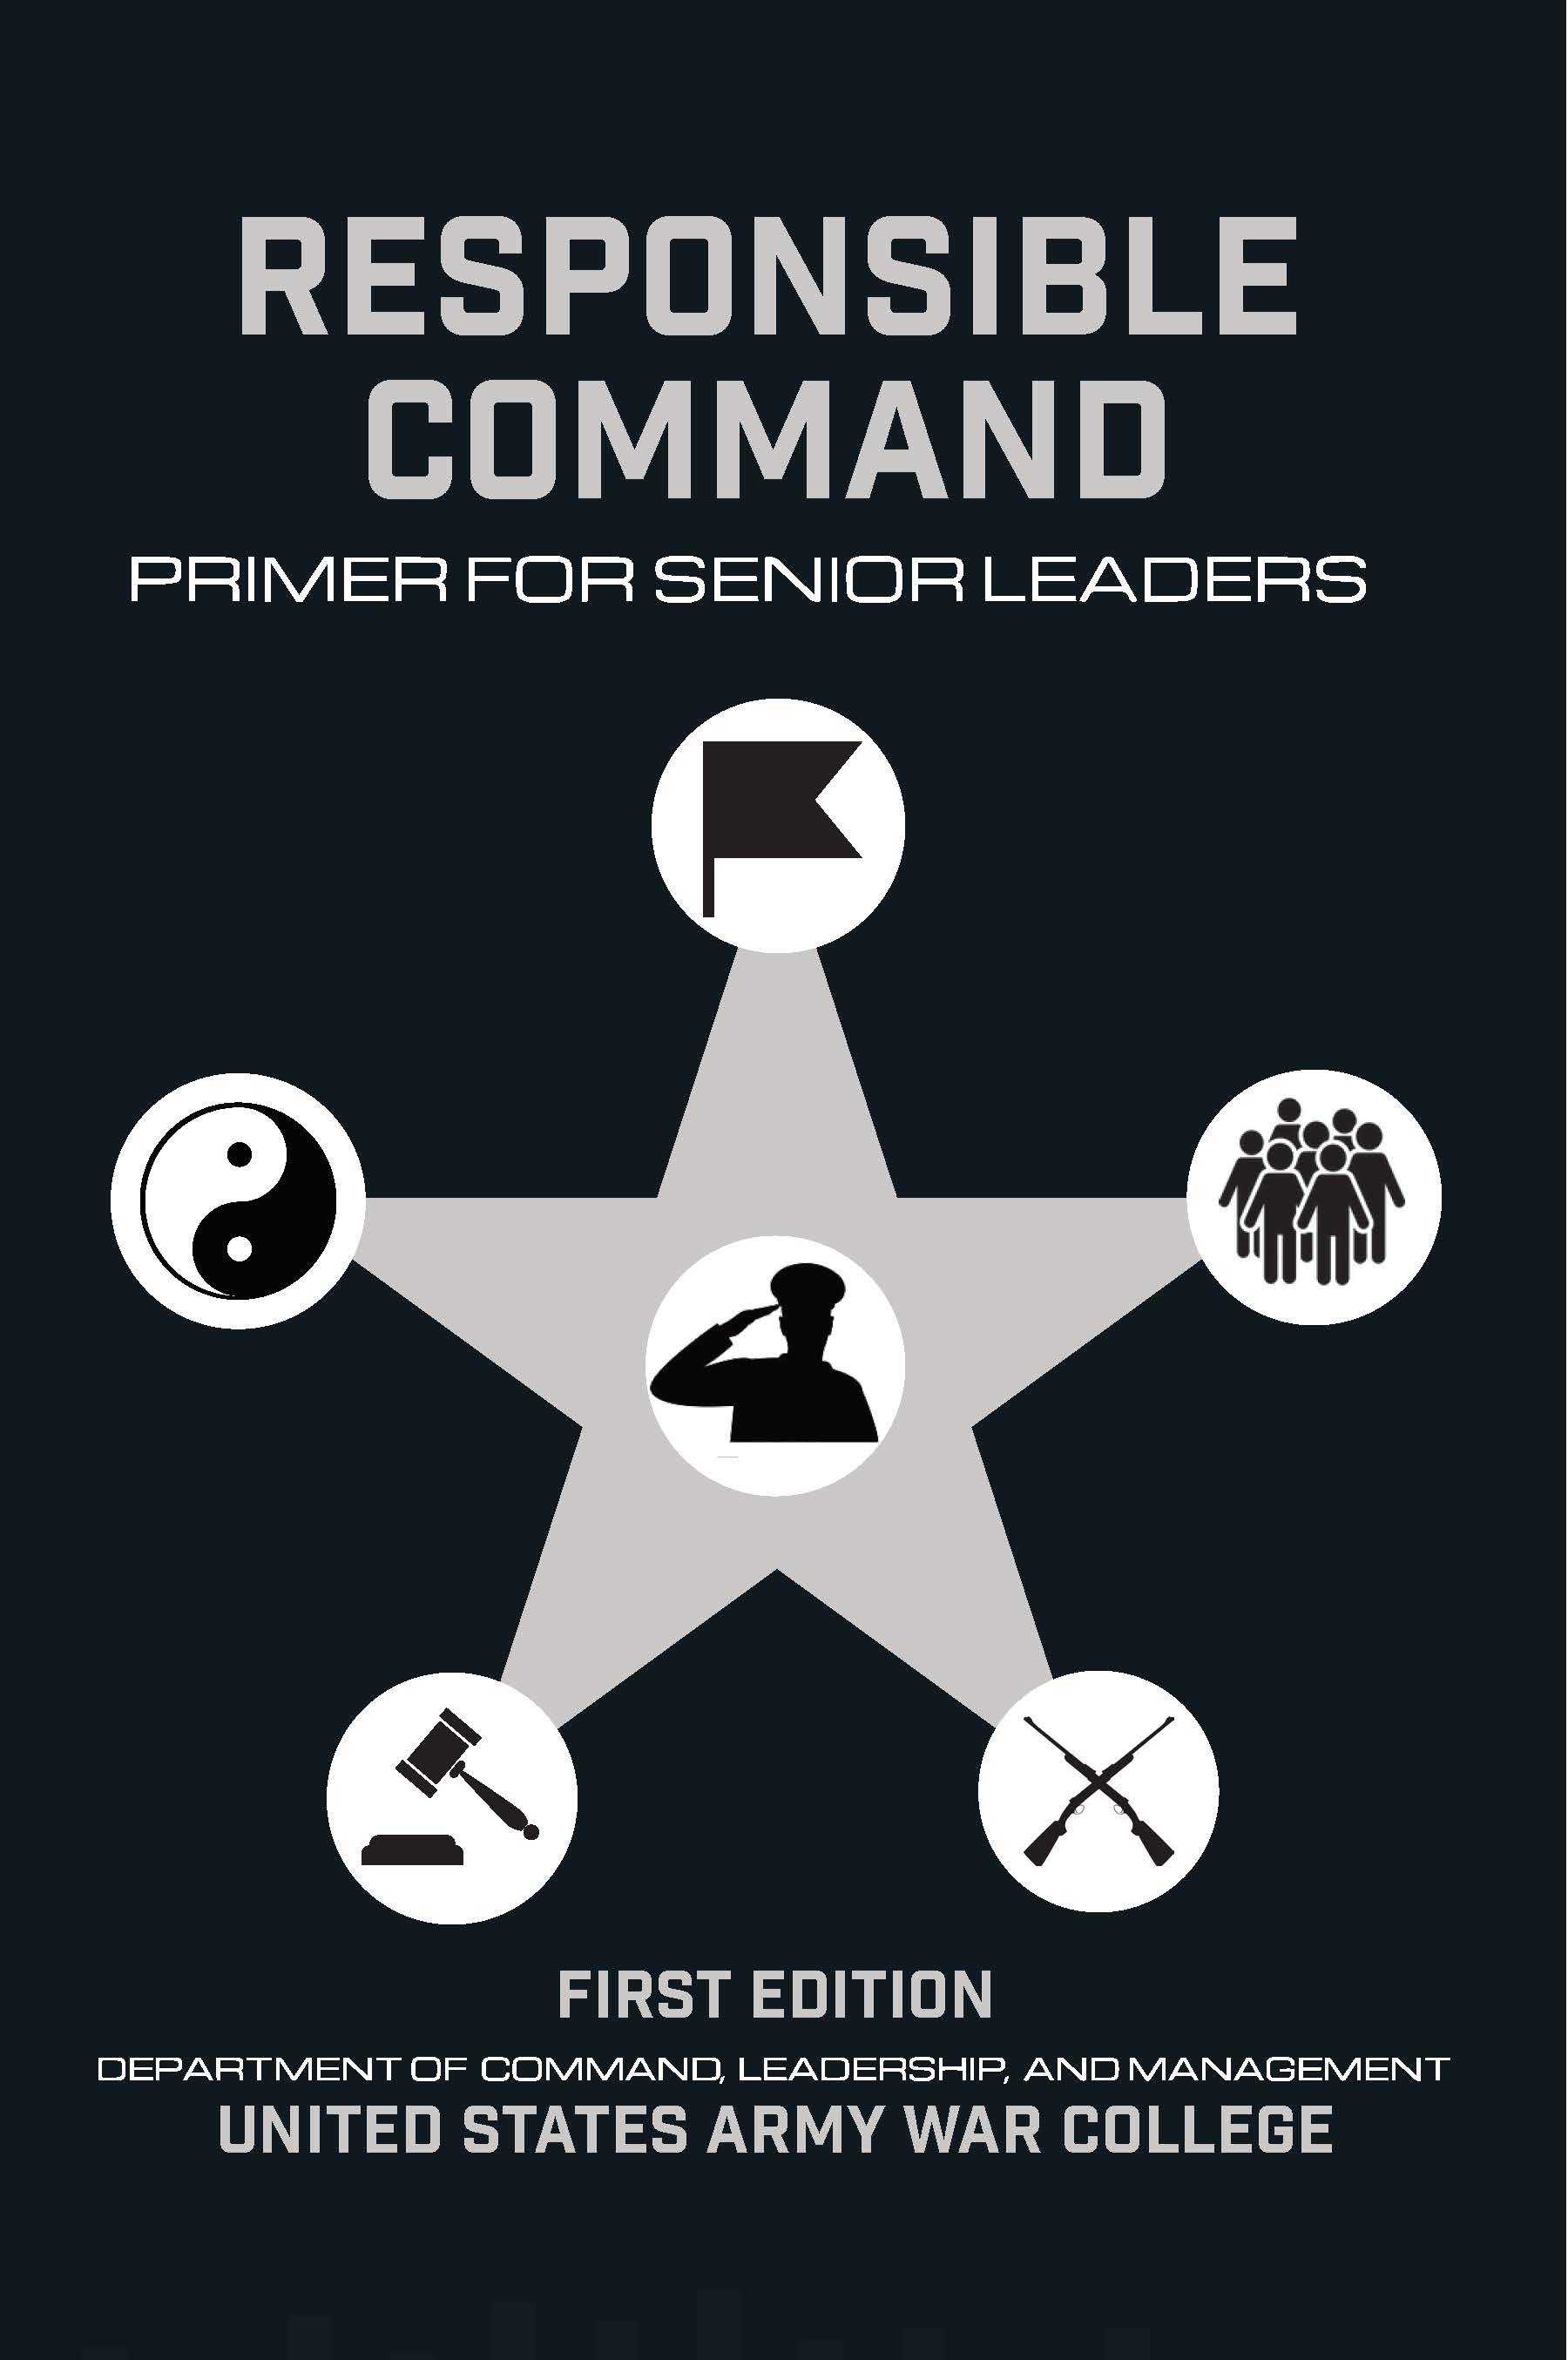 RESPONSIBLE COMMAND PRIMER FOR SENIOR LEADERS